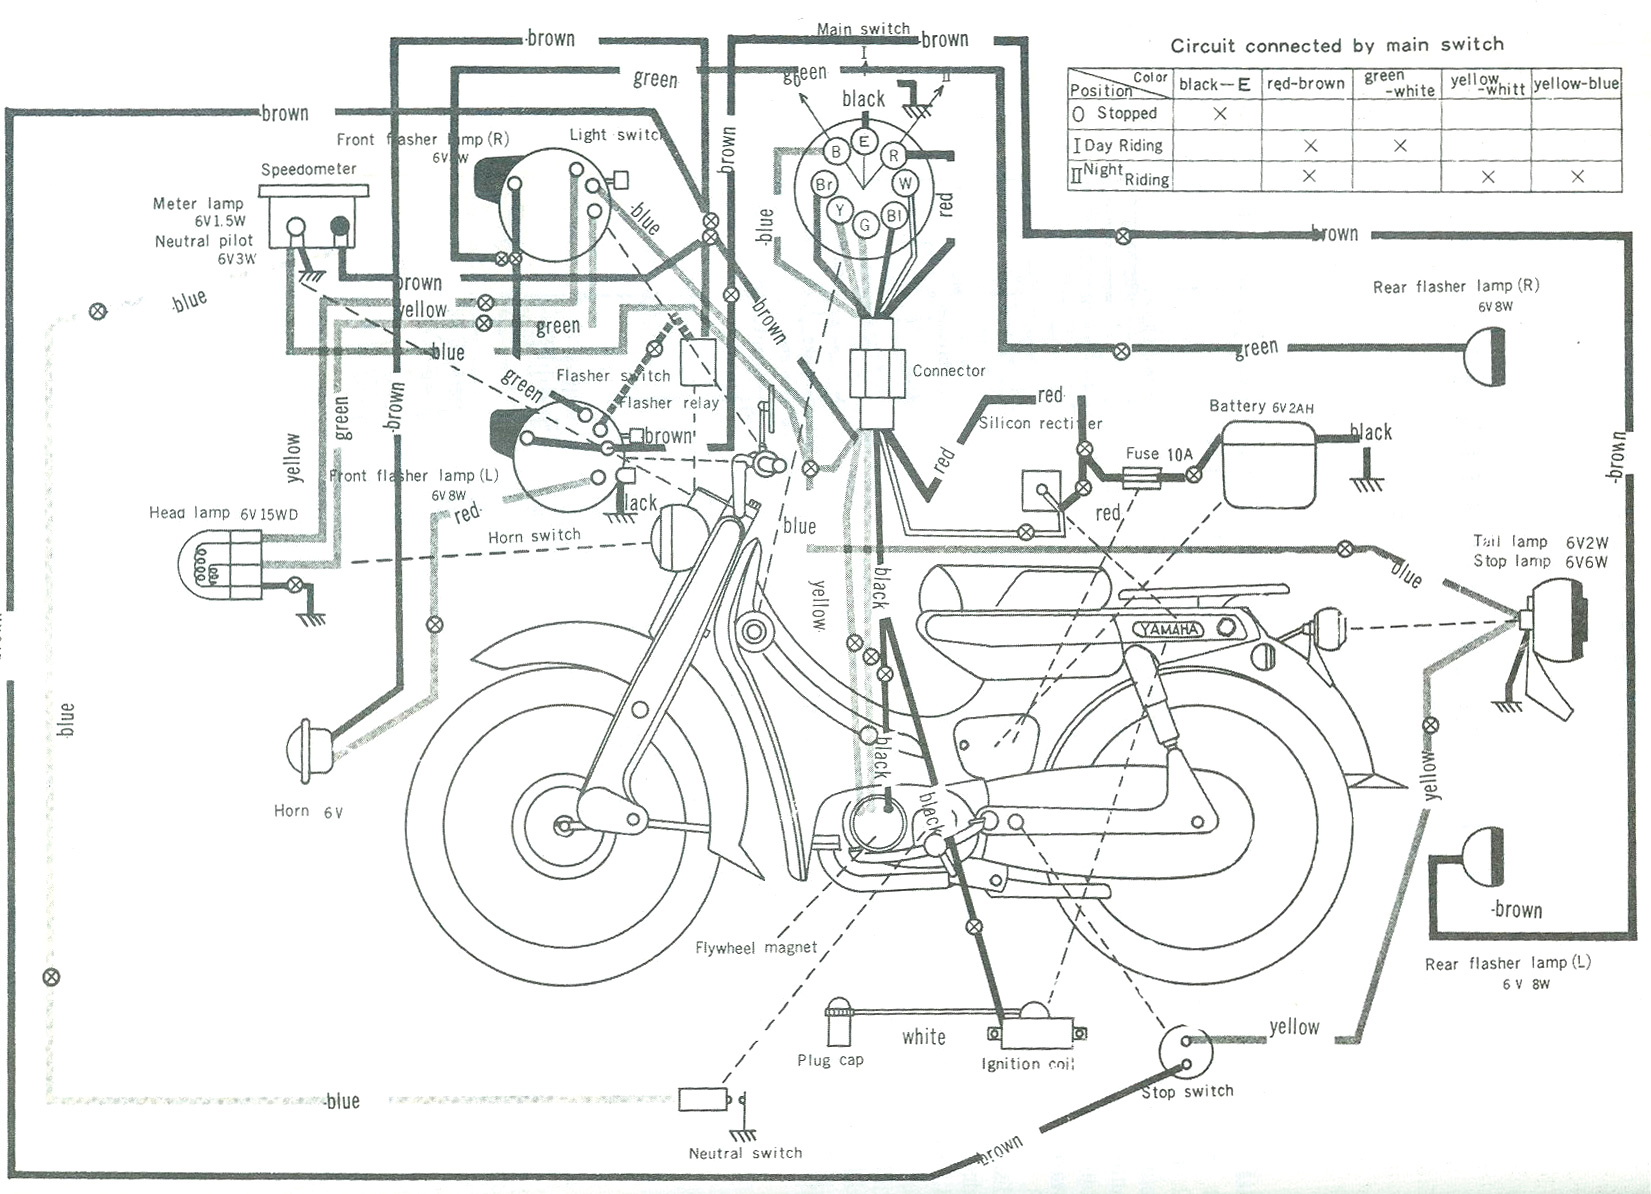 u5e_wiring u5e] motorcycle wiring schematics diagram yamaha schematic diagram at nearapp.co